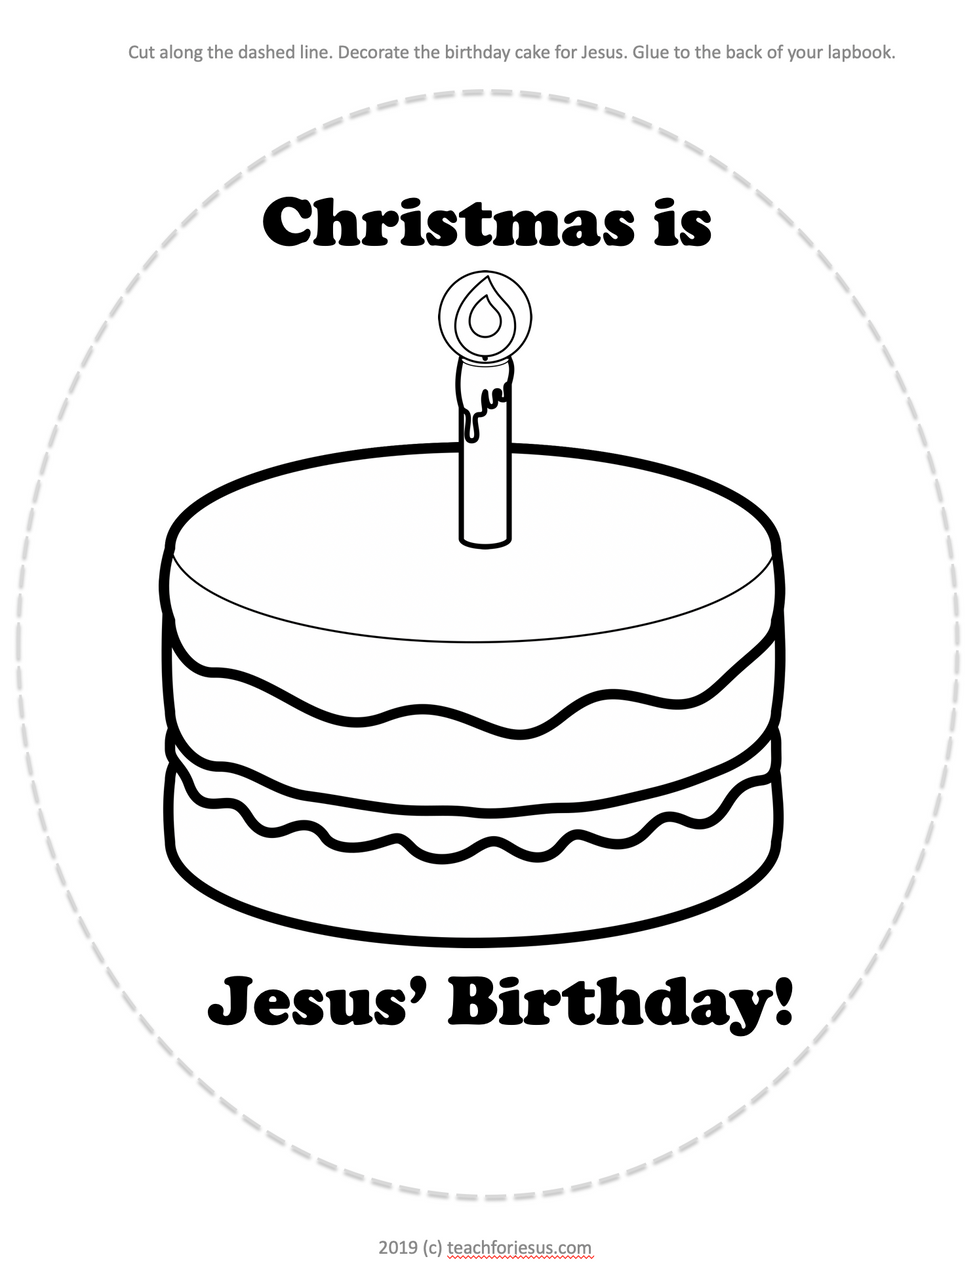 Christmas Jesus' Birthday Cake